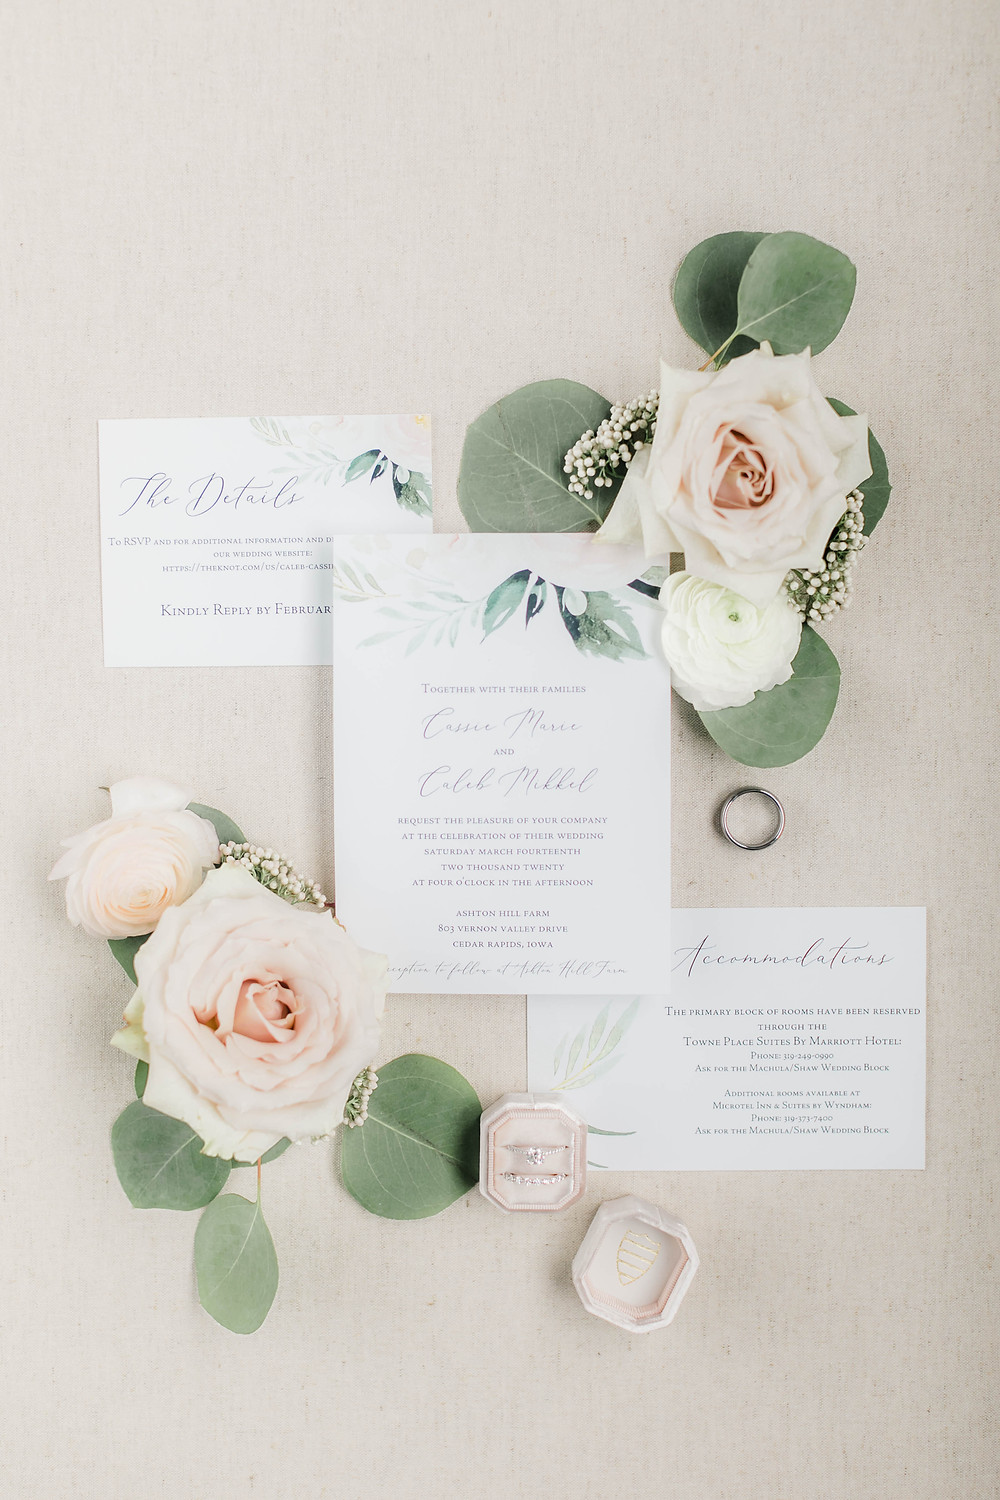 Wedding invitation suite with greenery and blush flower accents